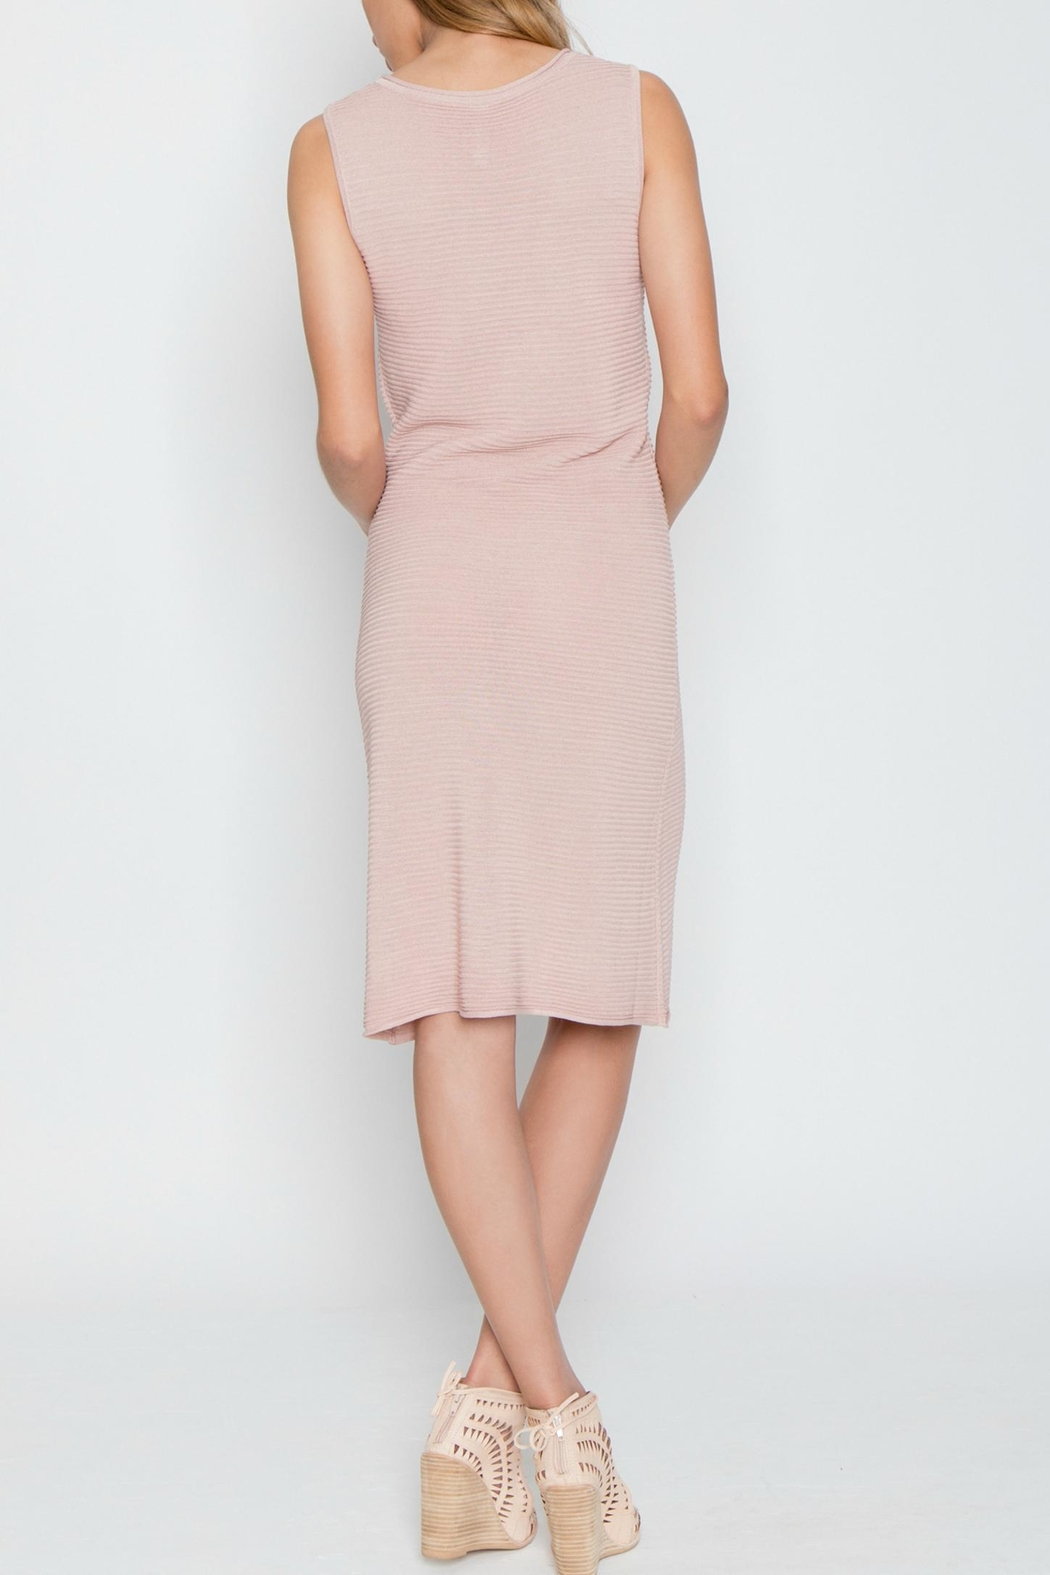 Miilla Passionate Pink Dress - Front Full Image